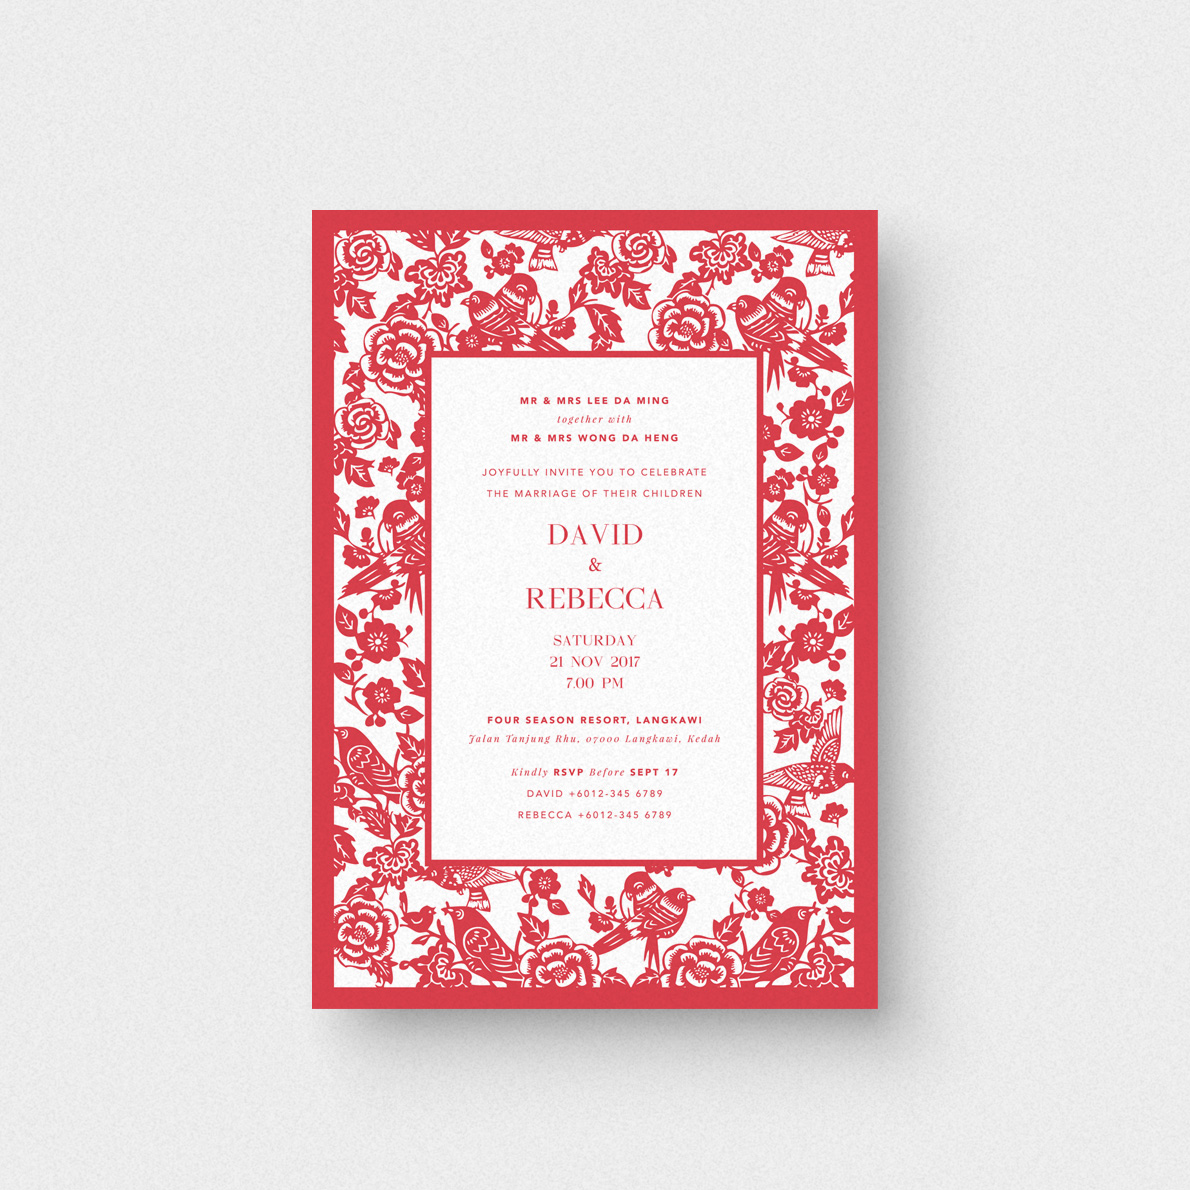 A Magpie\'s Kiss Invitation Card - The Paperpapers - Wedding ...